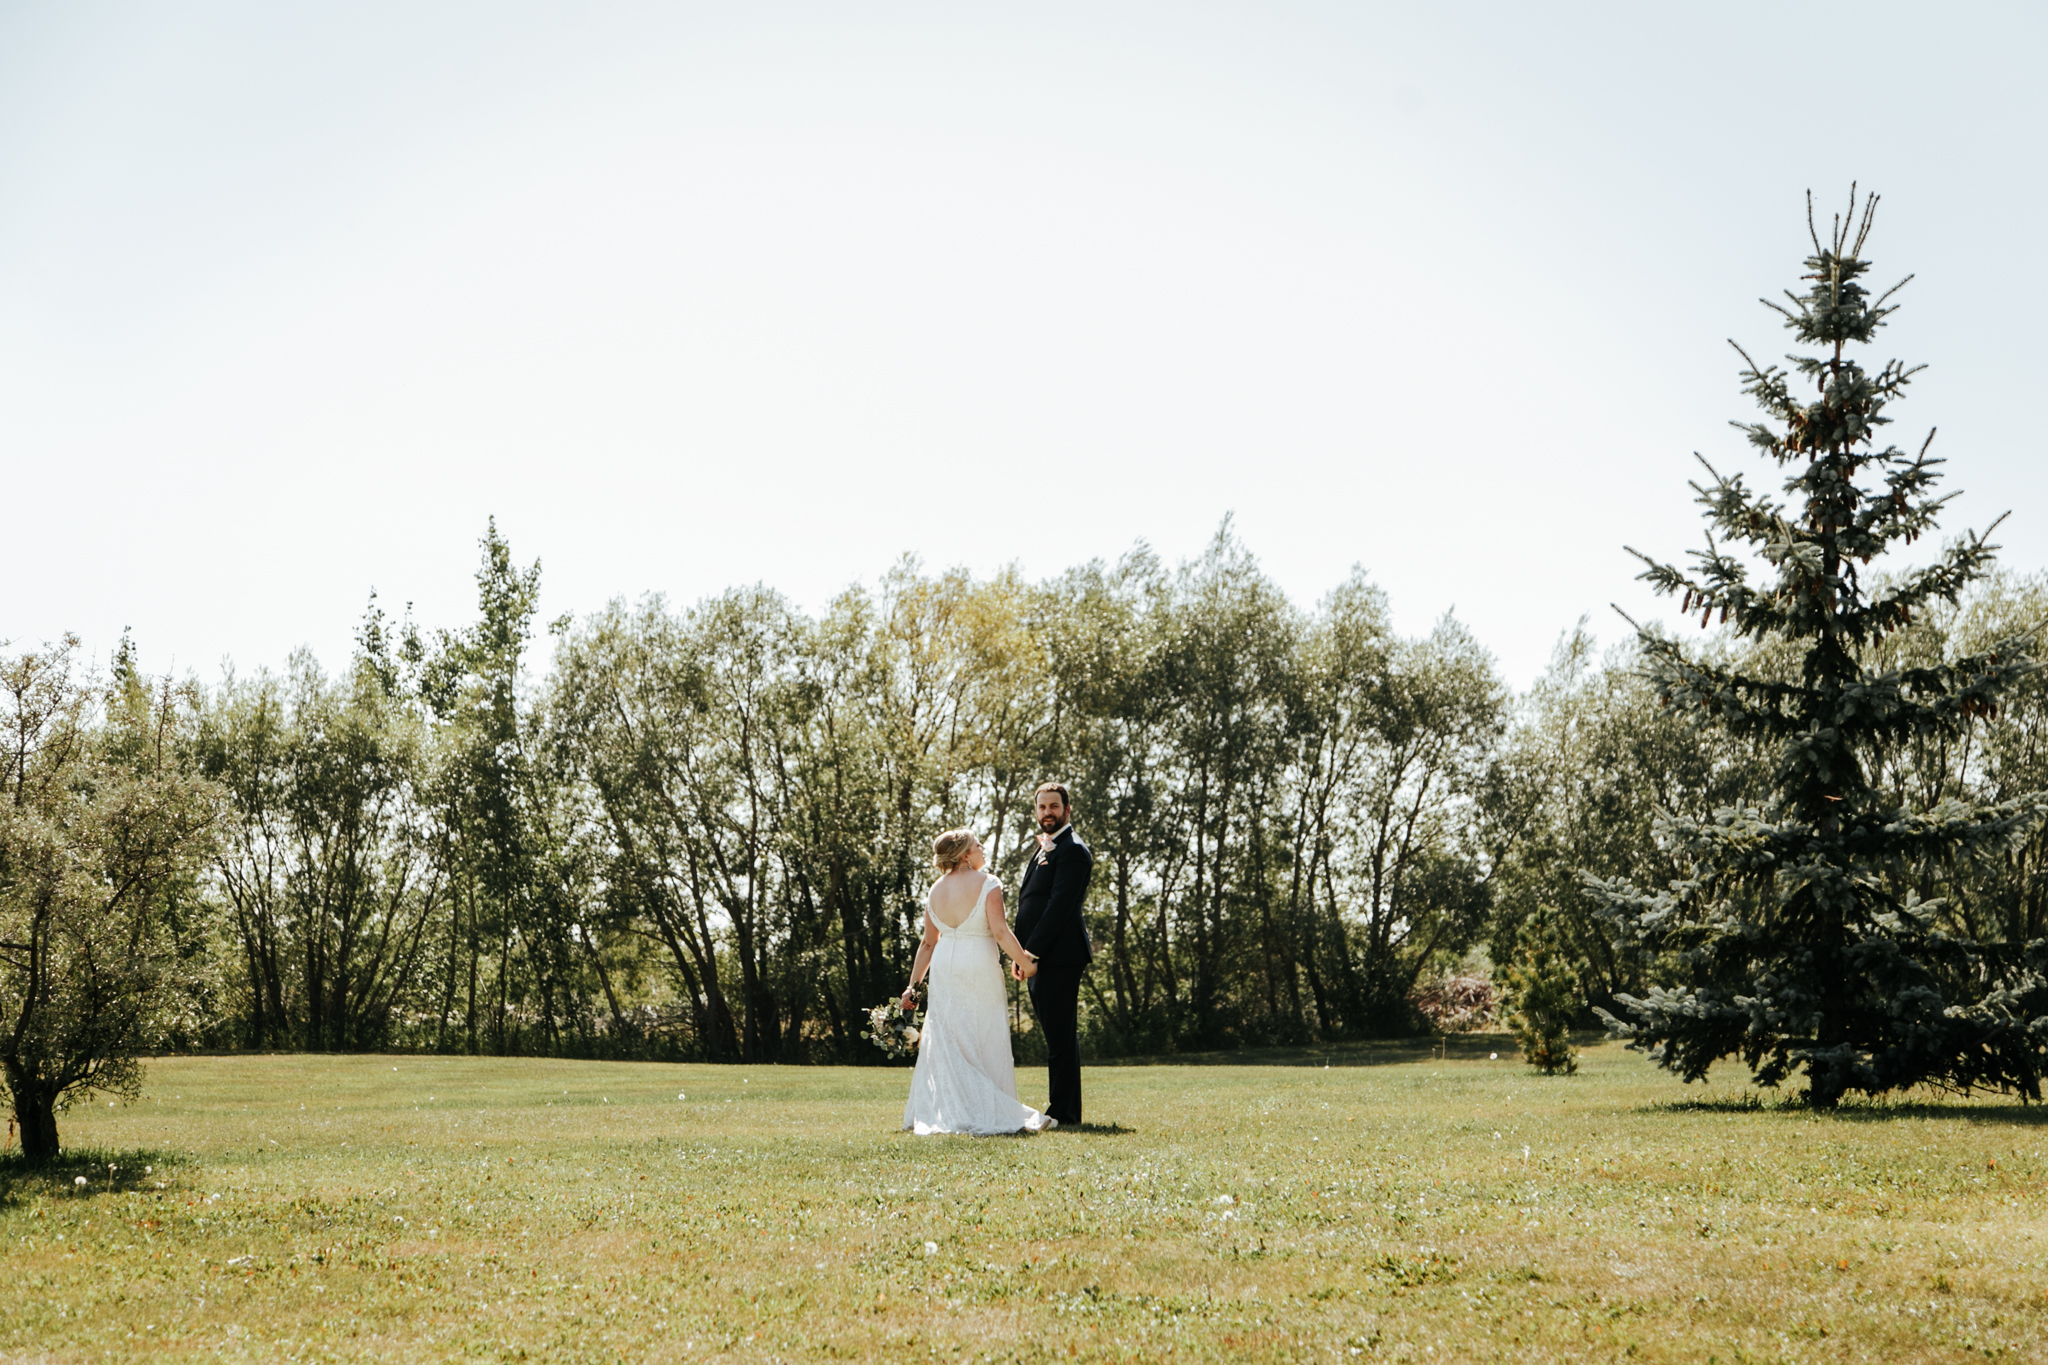 red-deer-wedding-photographer-love-and-be-loved-photography-emily-gab-photo-image-picture-90.jpg